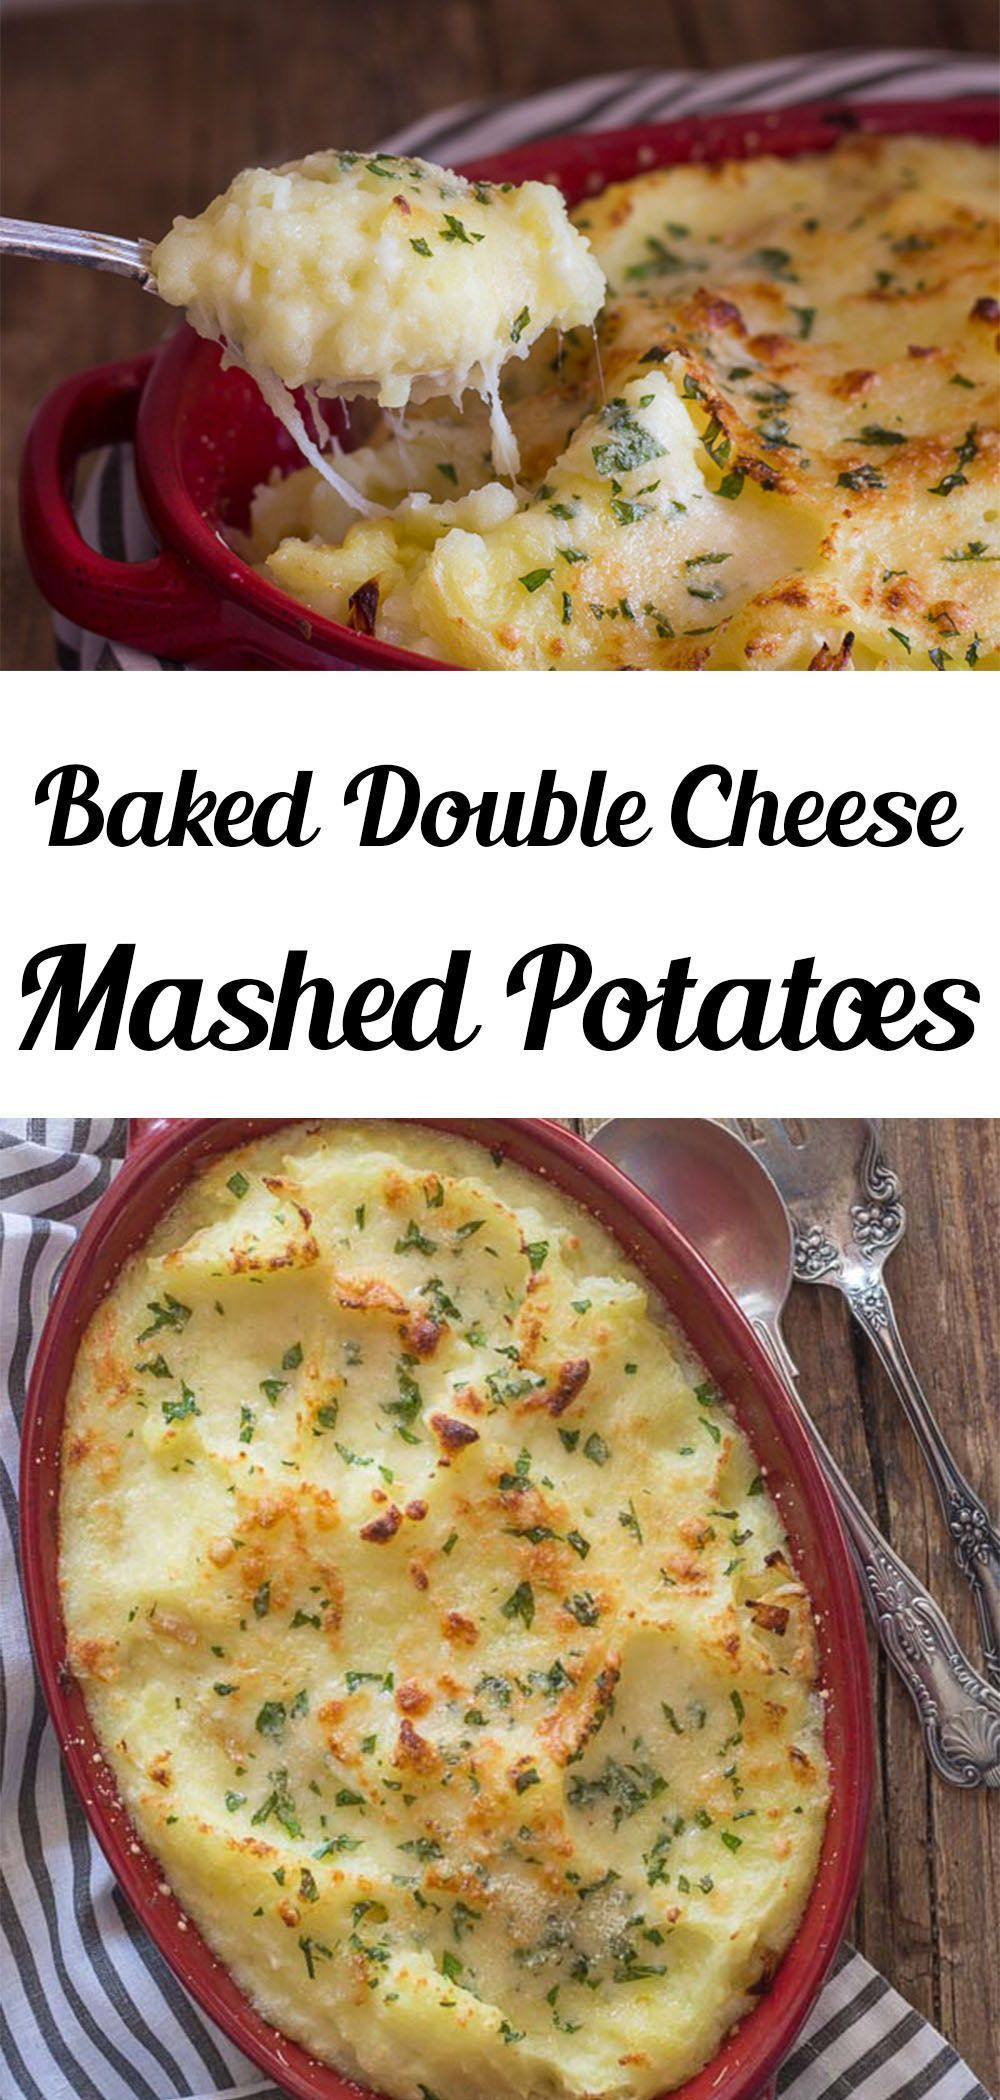 Baked Double Cheese Mashed Potatoes - An Italian i